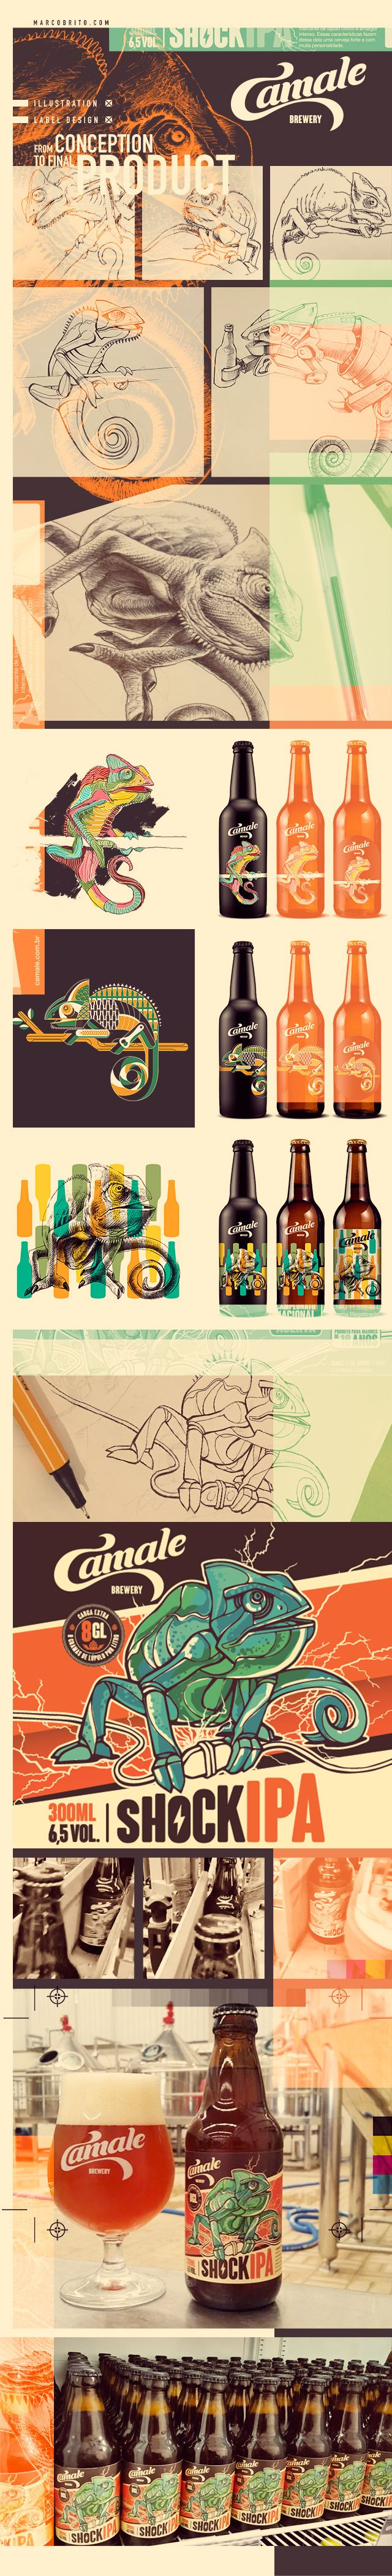 Beer Label Design, illustration for Camale Brewery - http://www.camale.com.br/